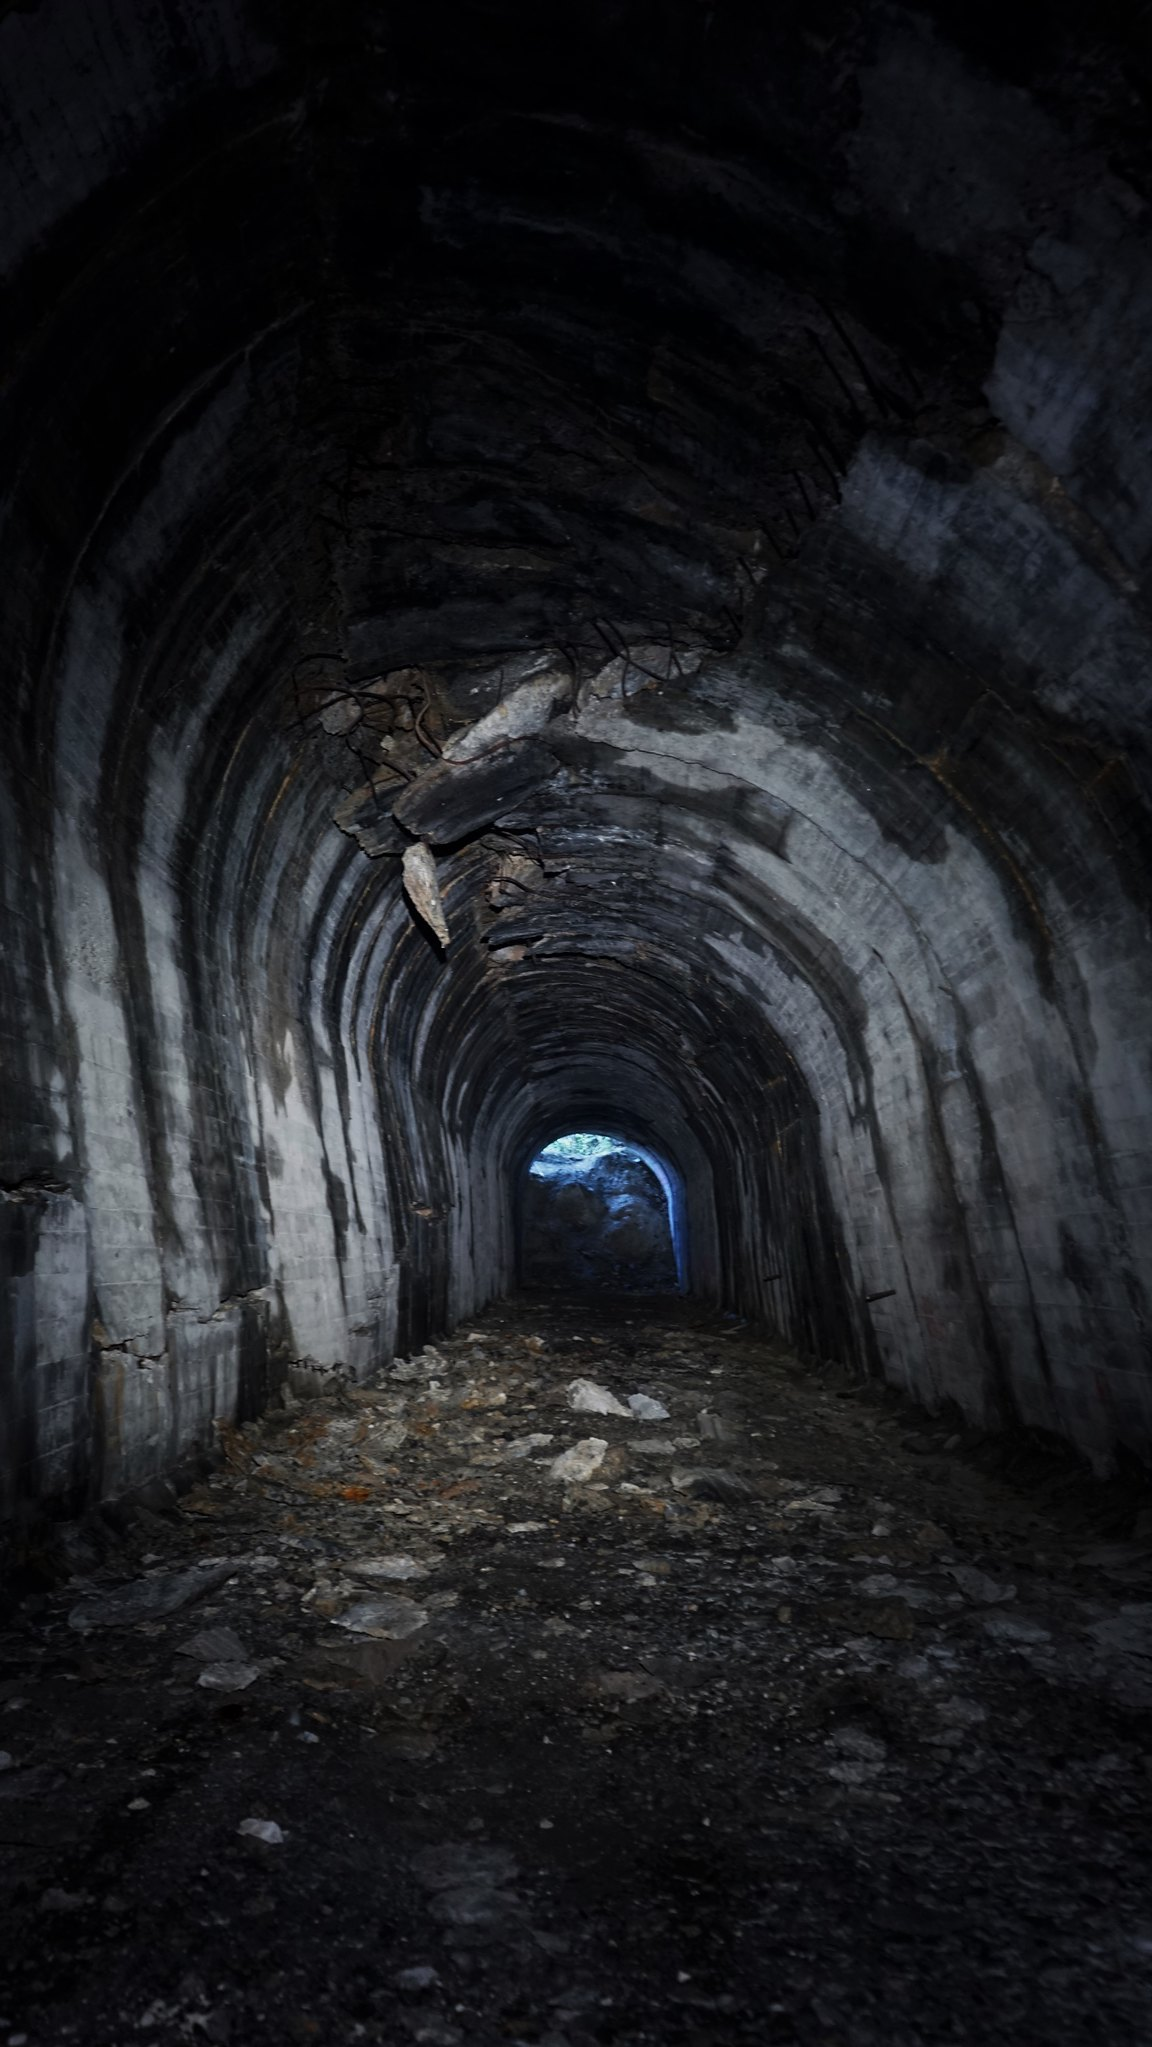 Abandoned South Island tunnel, New Zealand, Urbex Central NZ